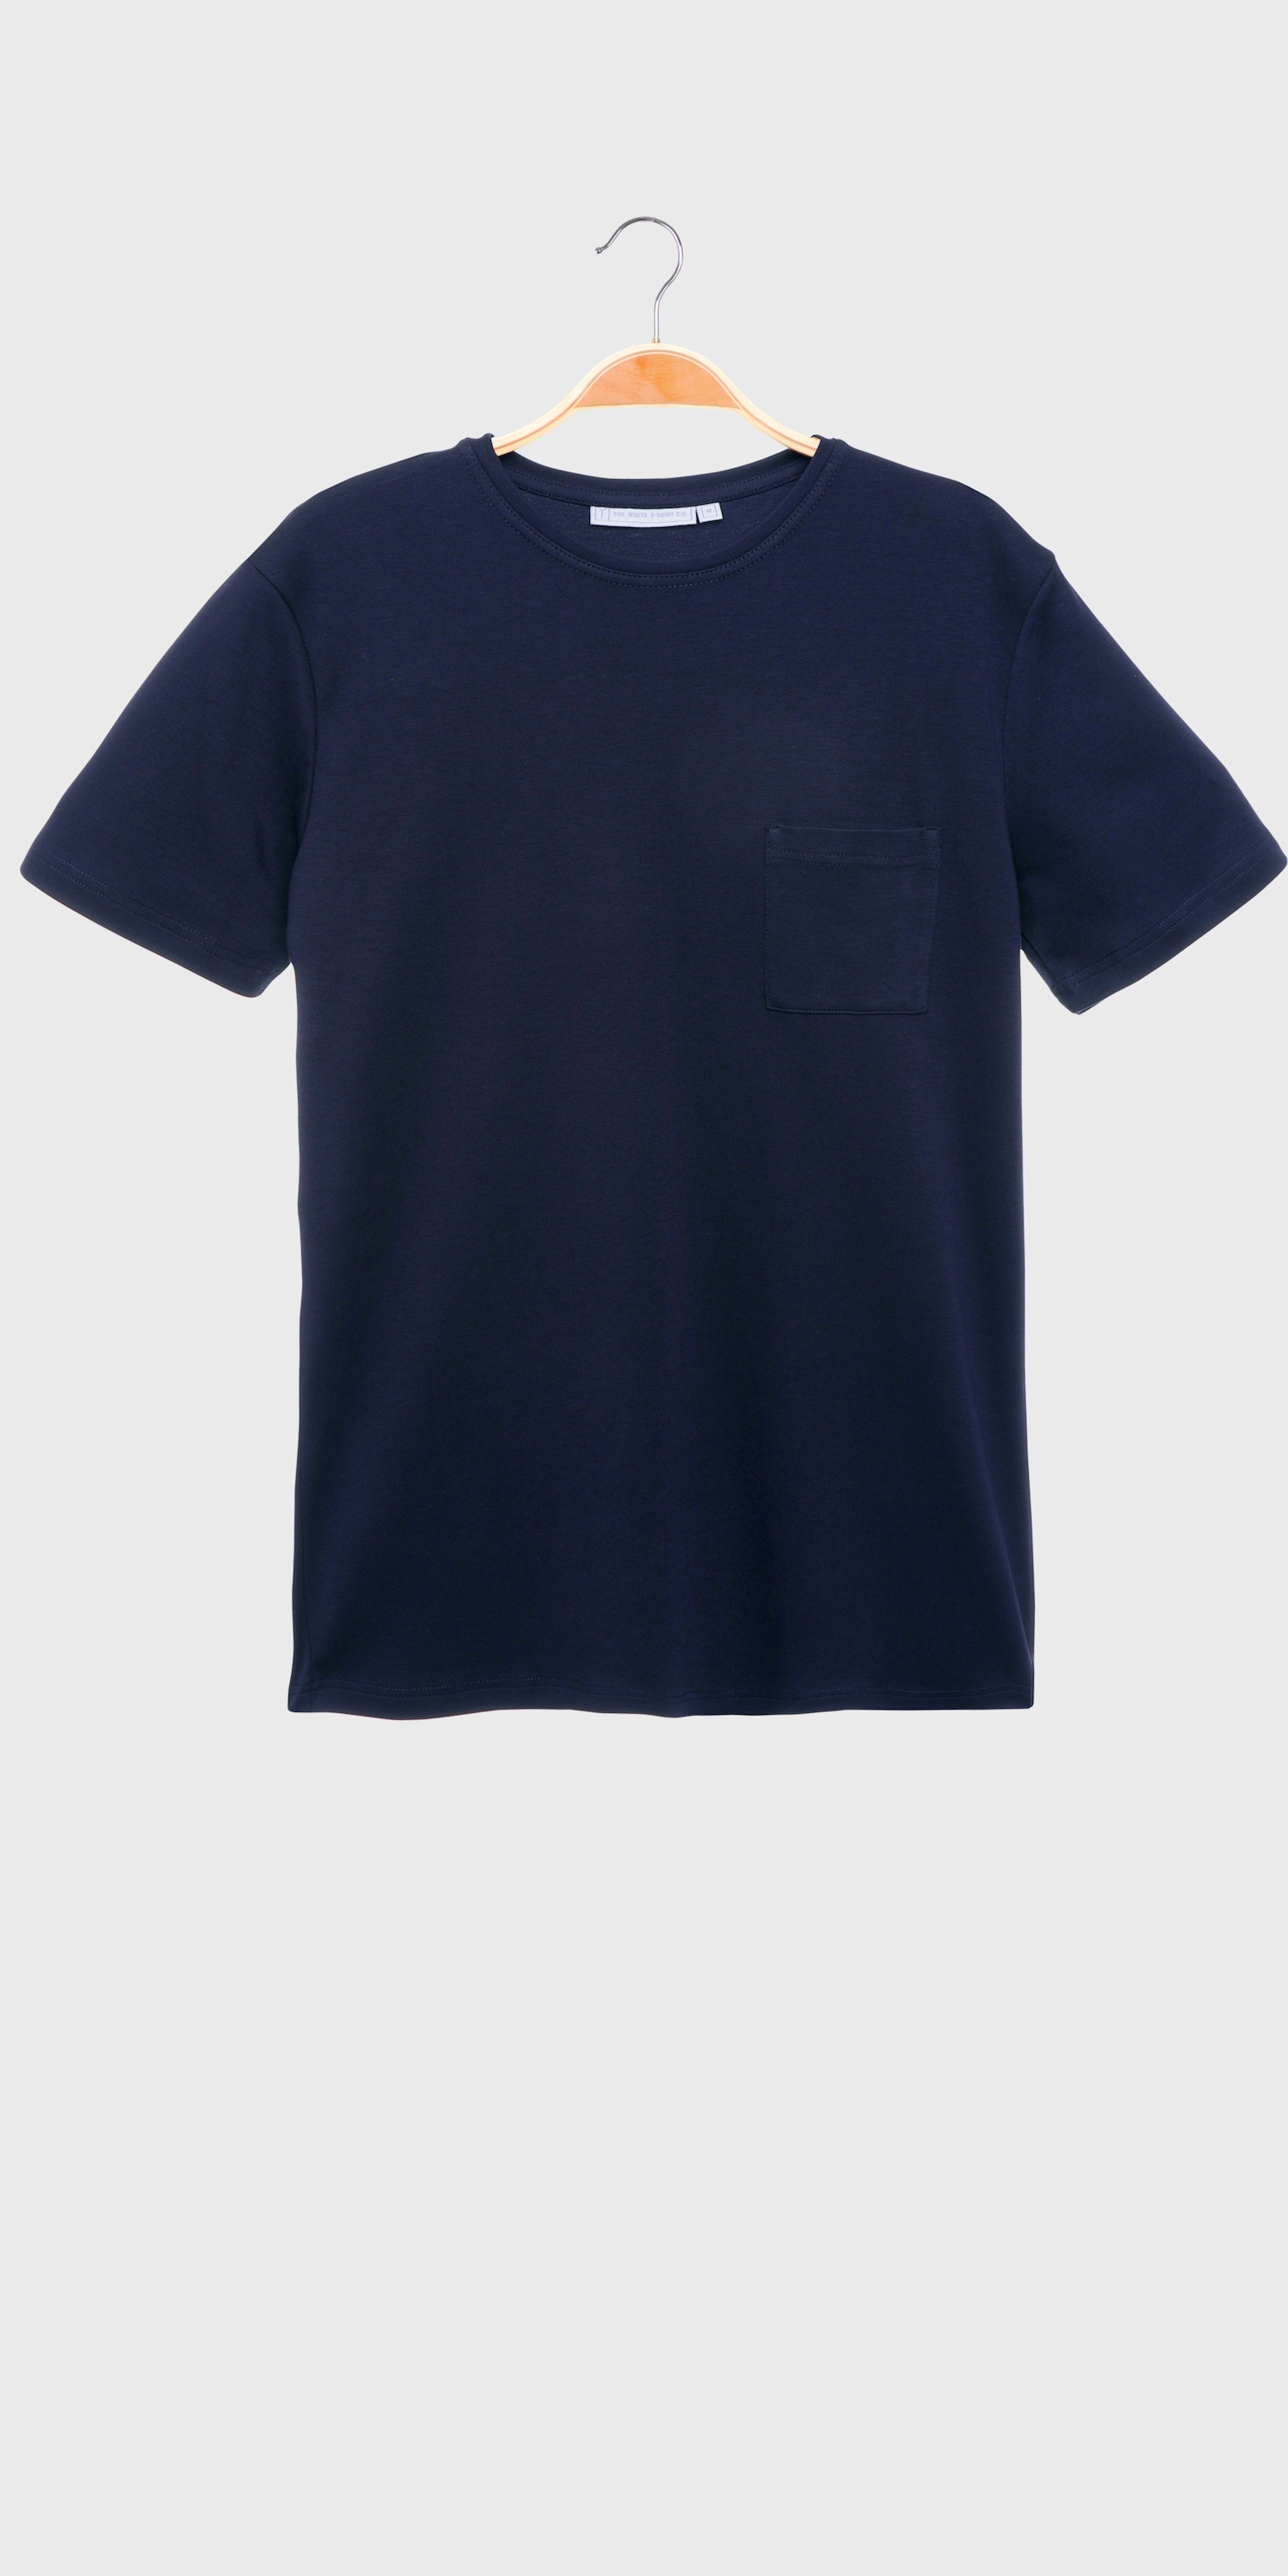 men's navy t-shirt with pocket